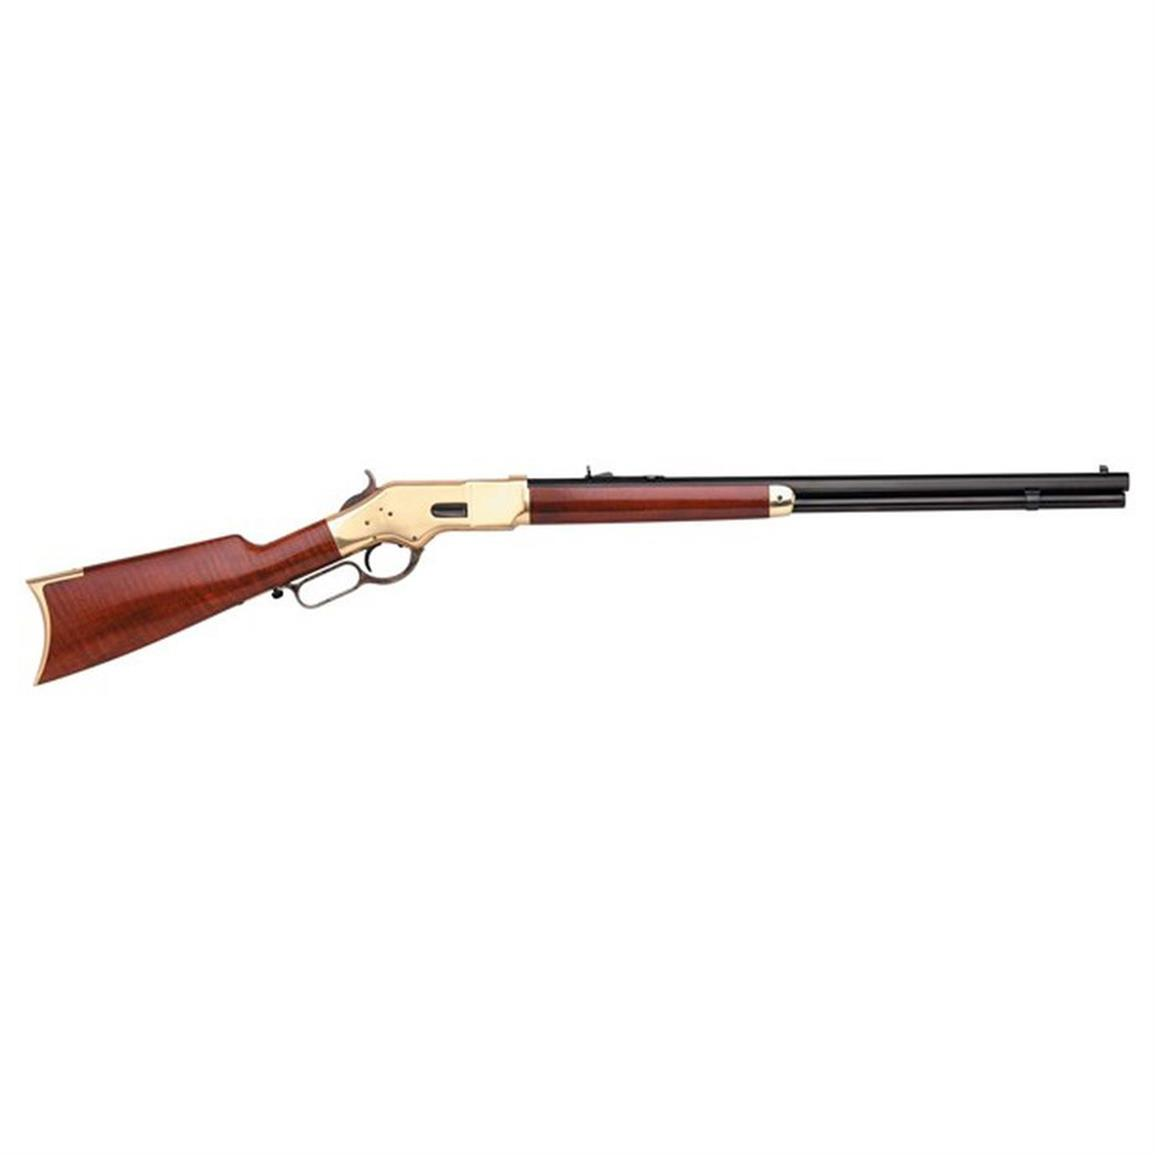 "Taylor's & Co. Uberti 1866 Sporting Rifle, Lever Action, .45 Colt, 24.25"" Barrel, 13+1 Rounds"